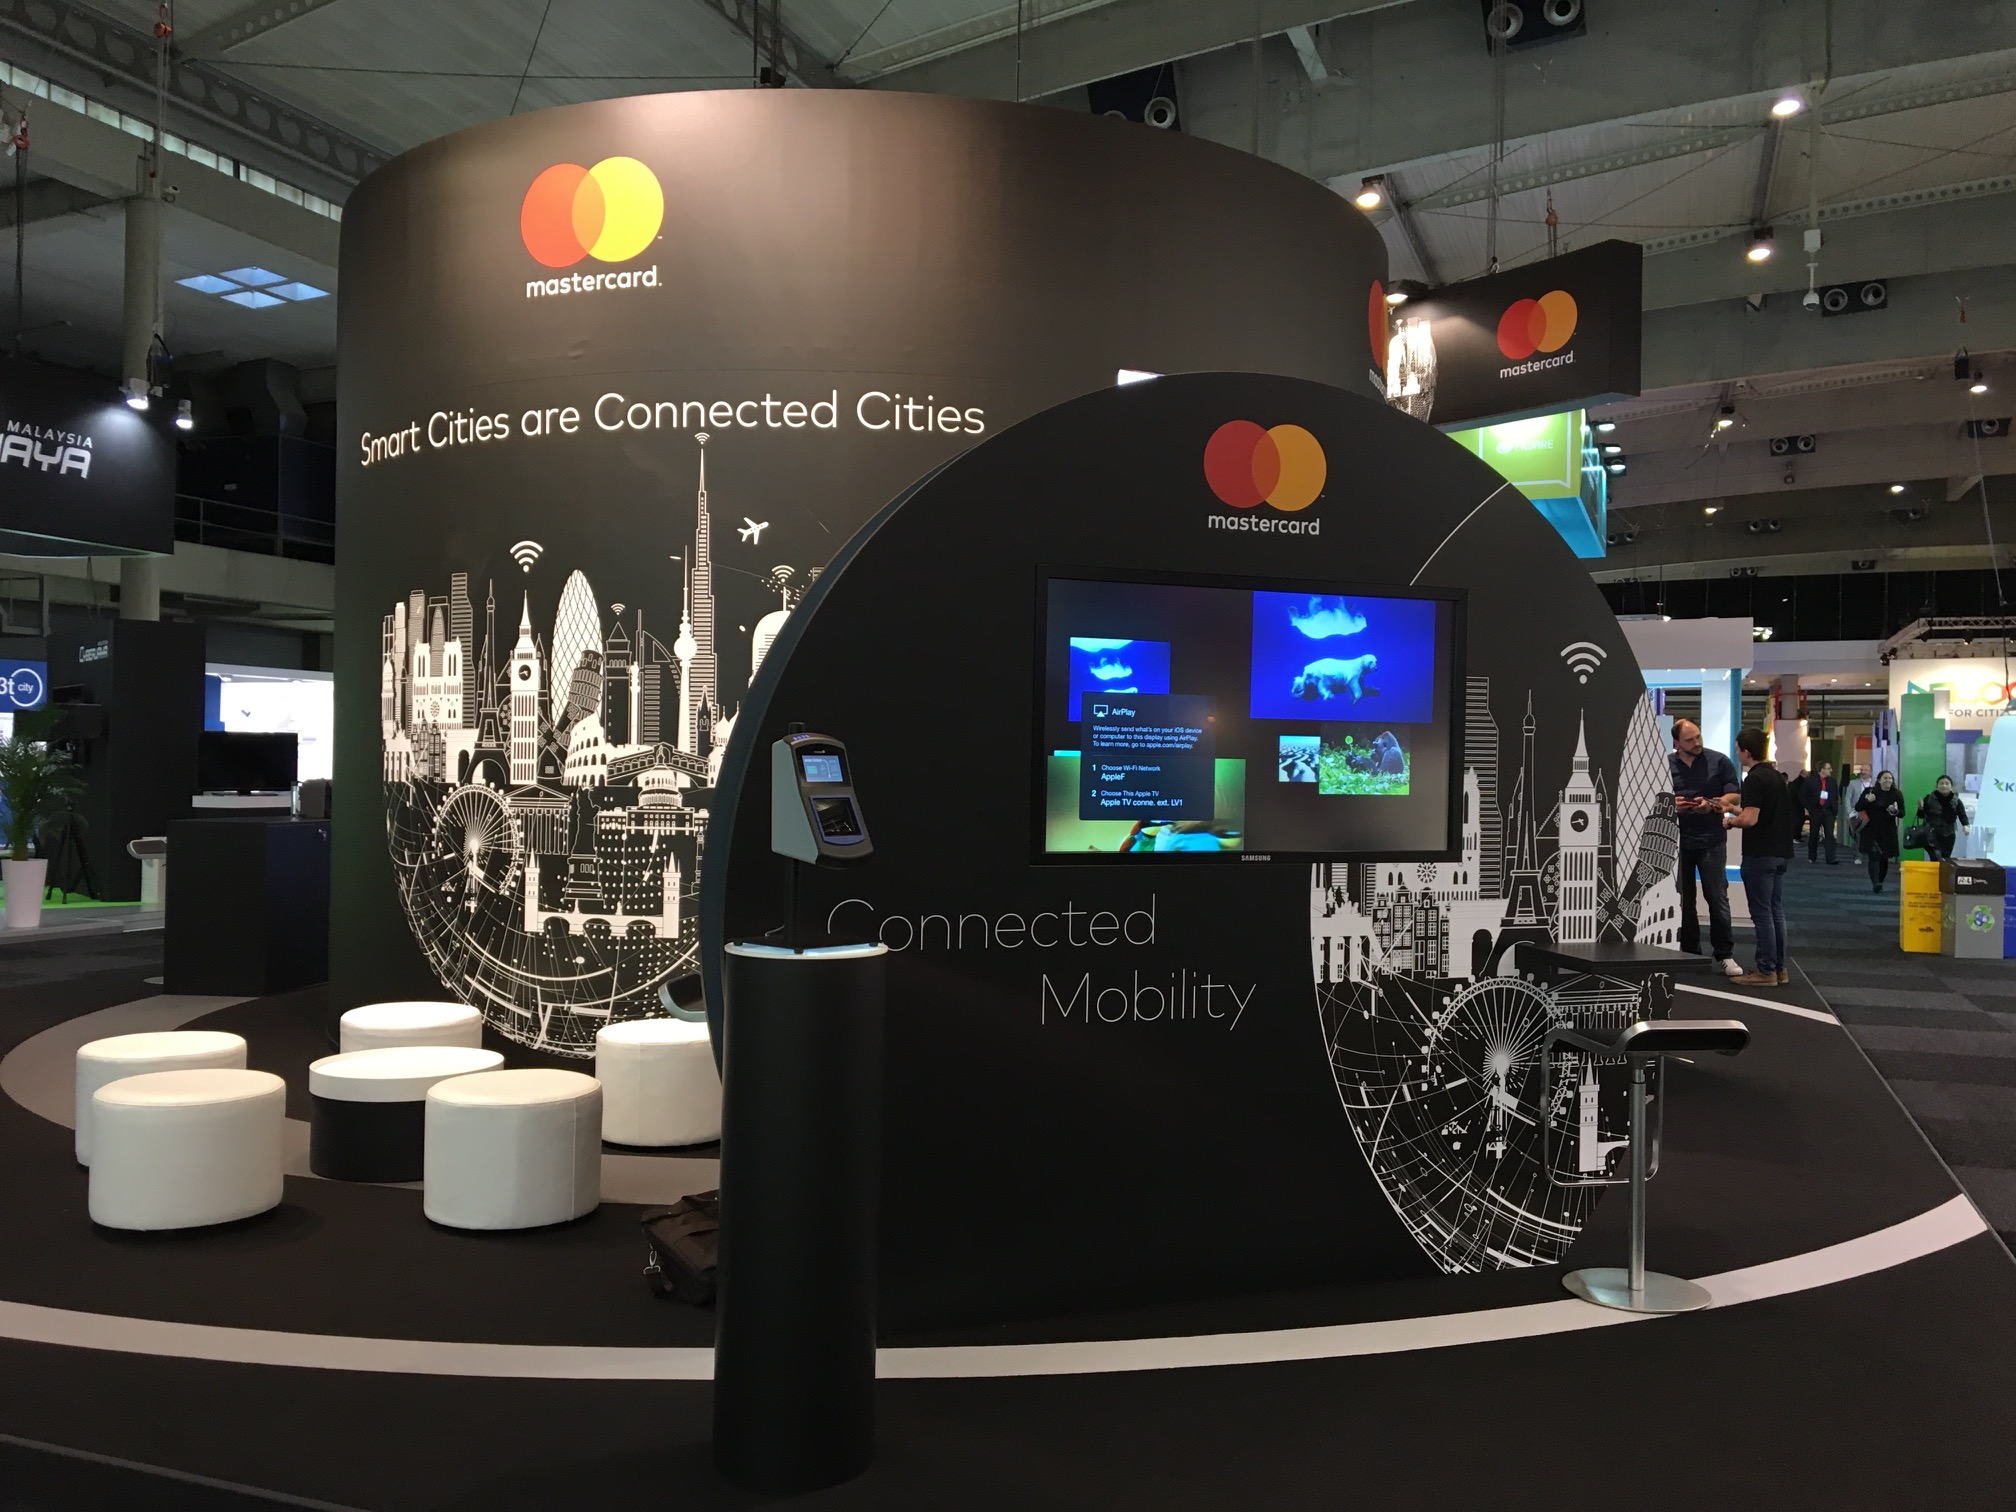 mastercard-smart-city-barcelona-2016-5